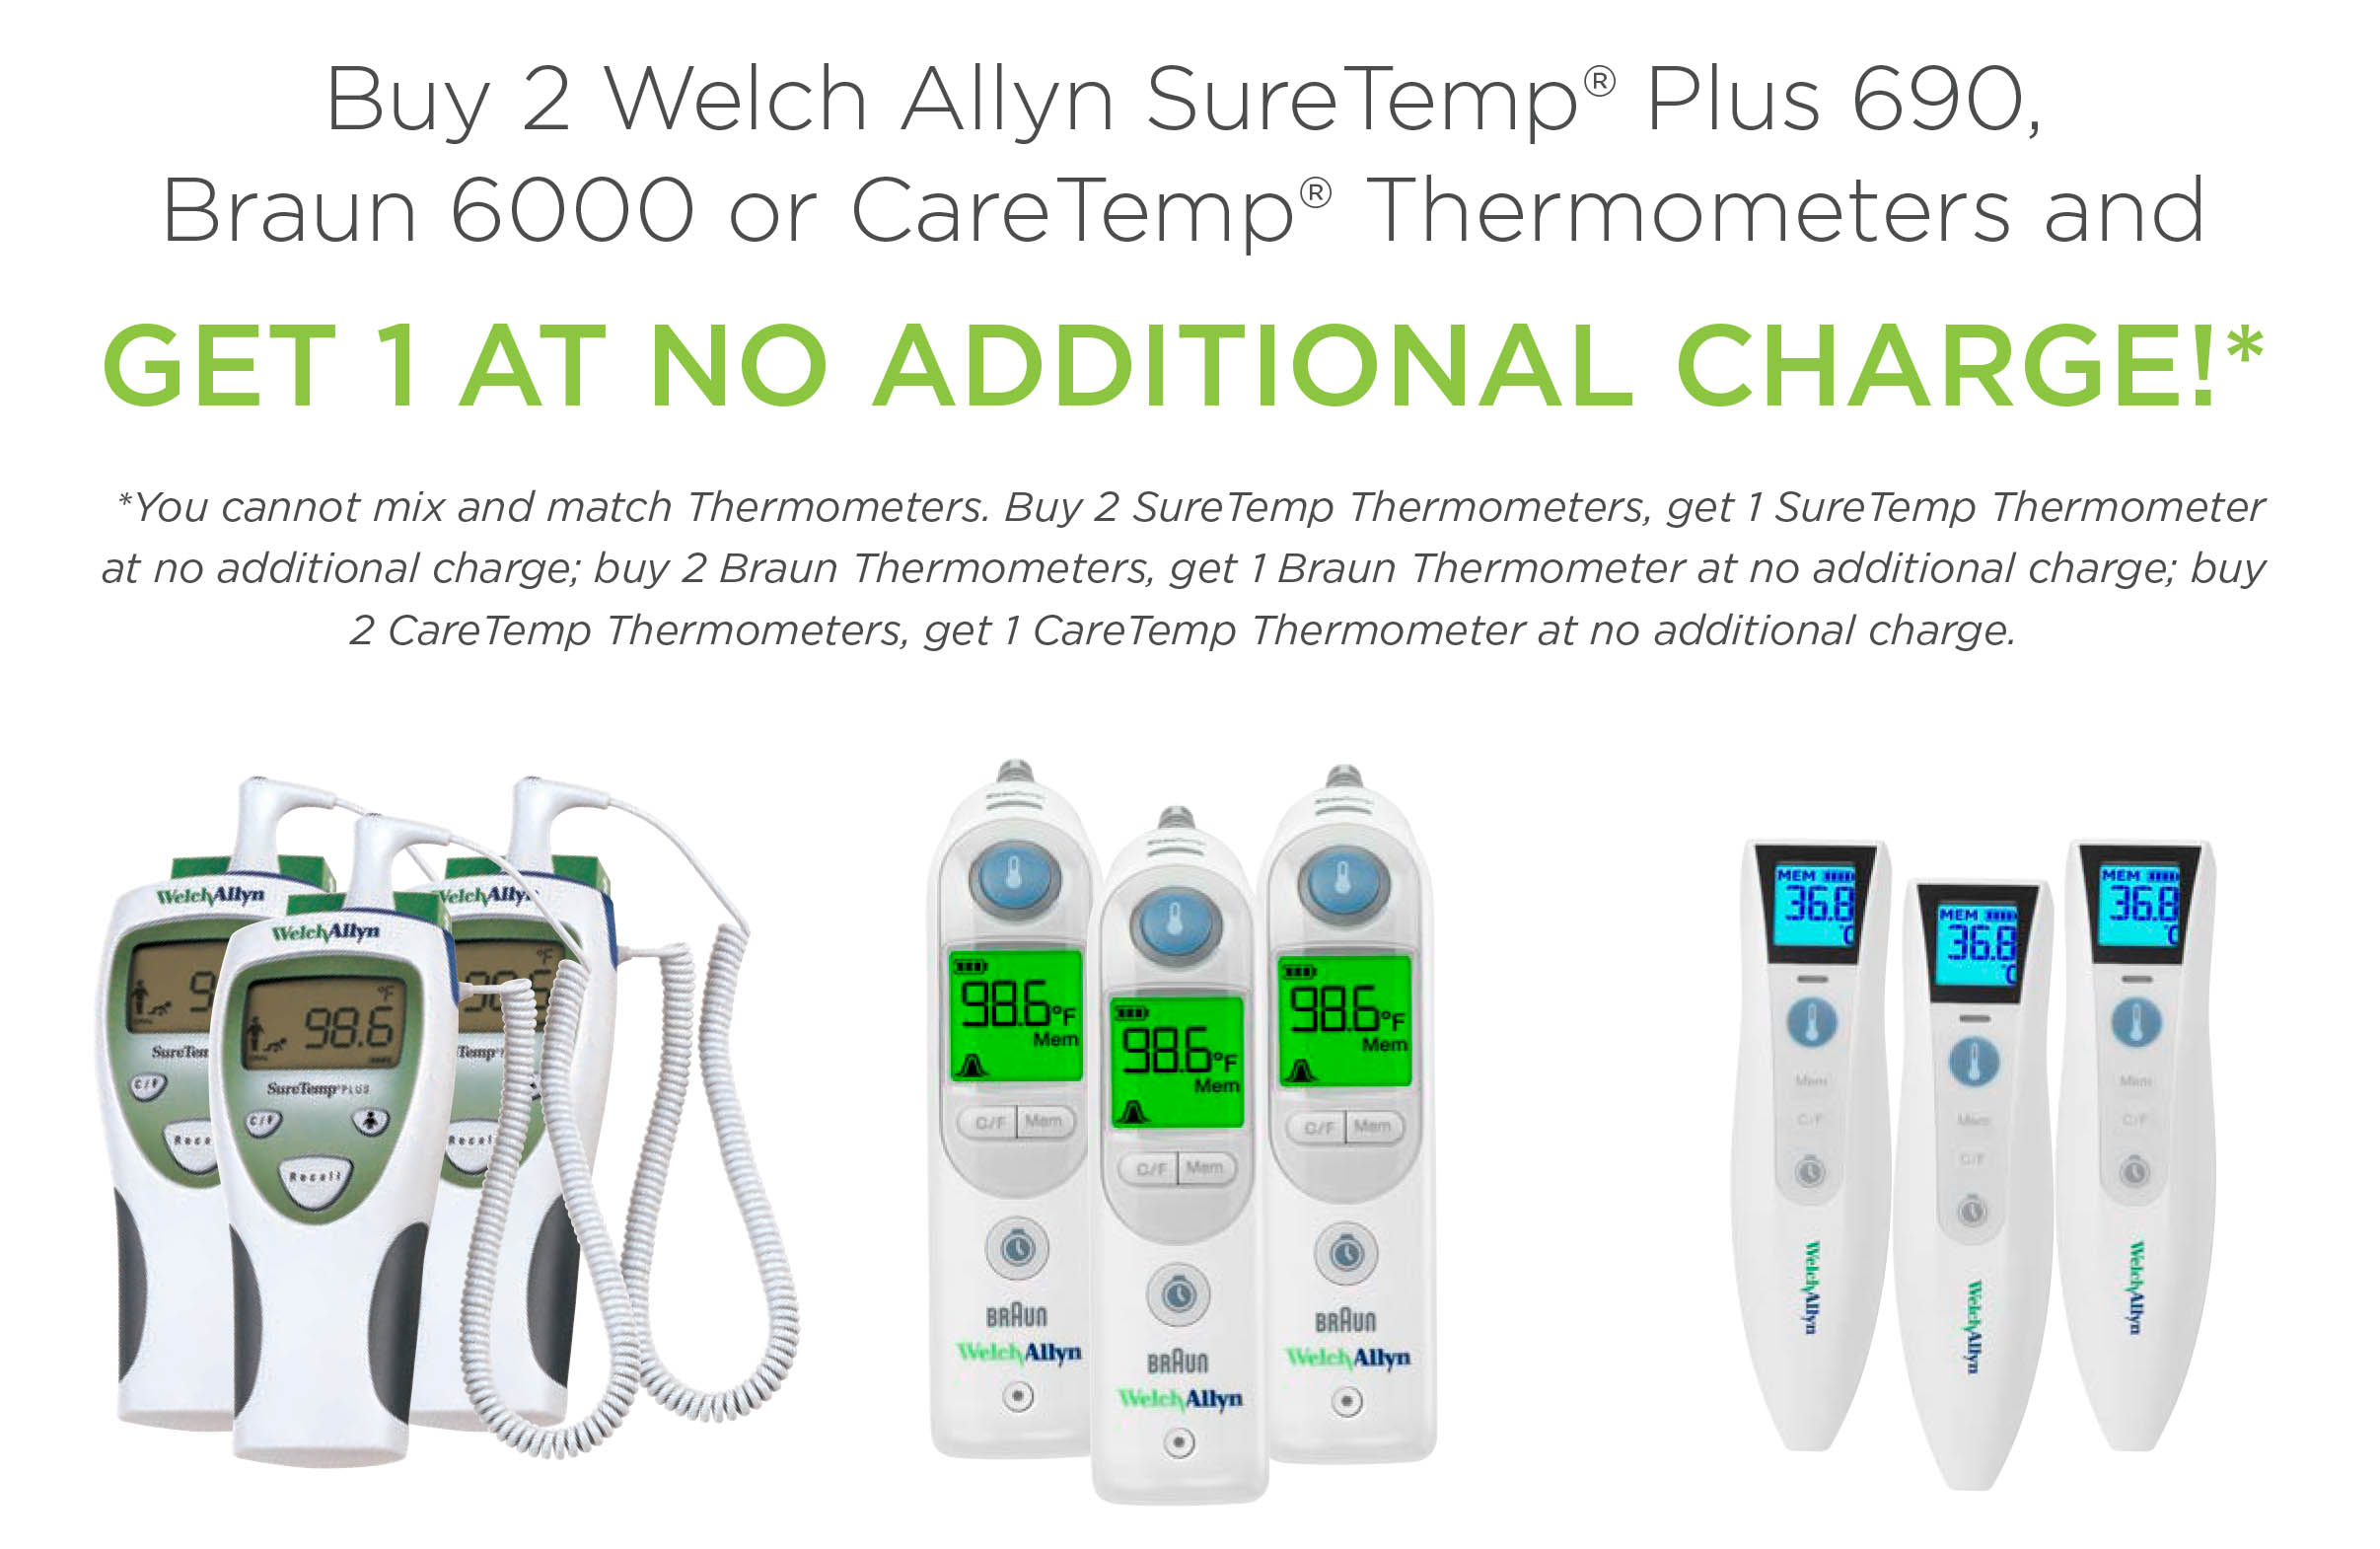 Welch Allyn Promo 2018